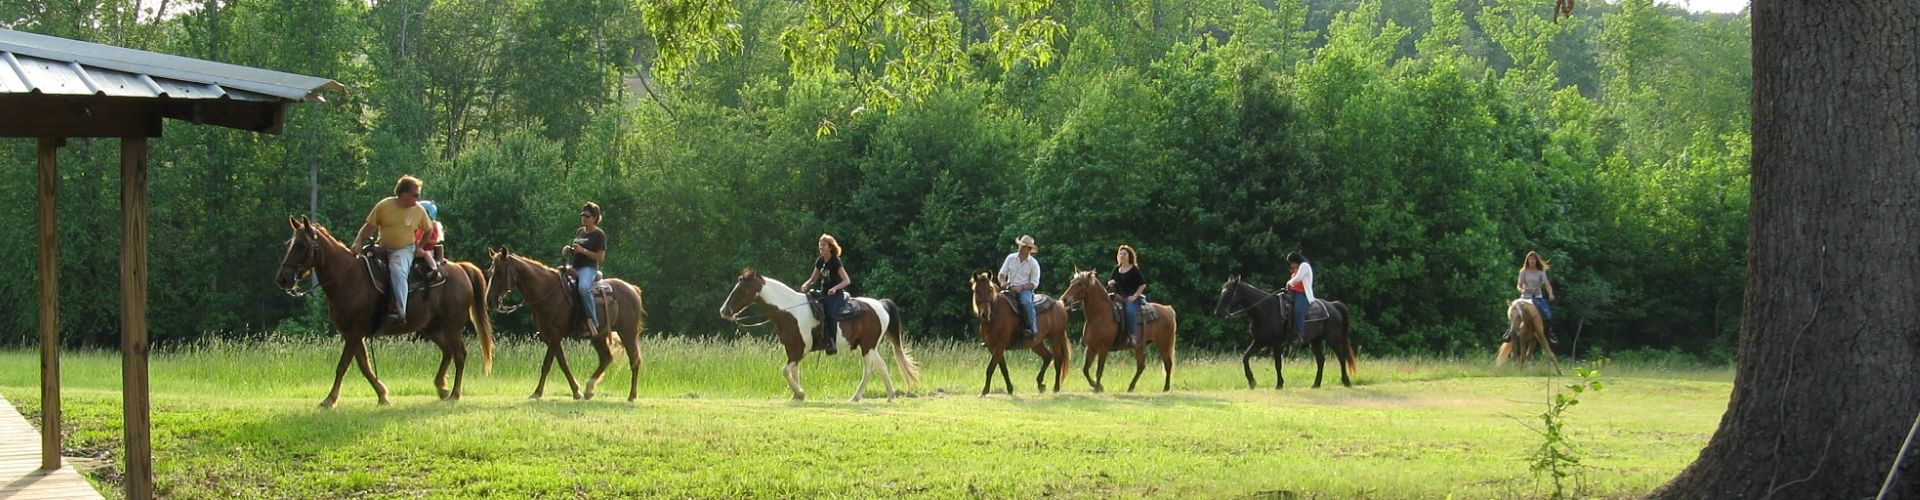 Cowgirl Retreat group